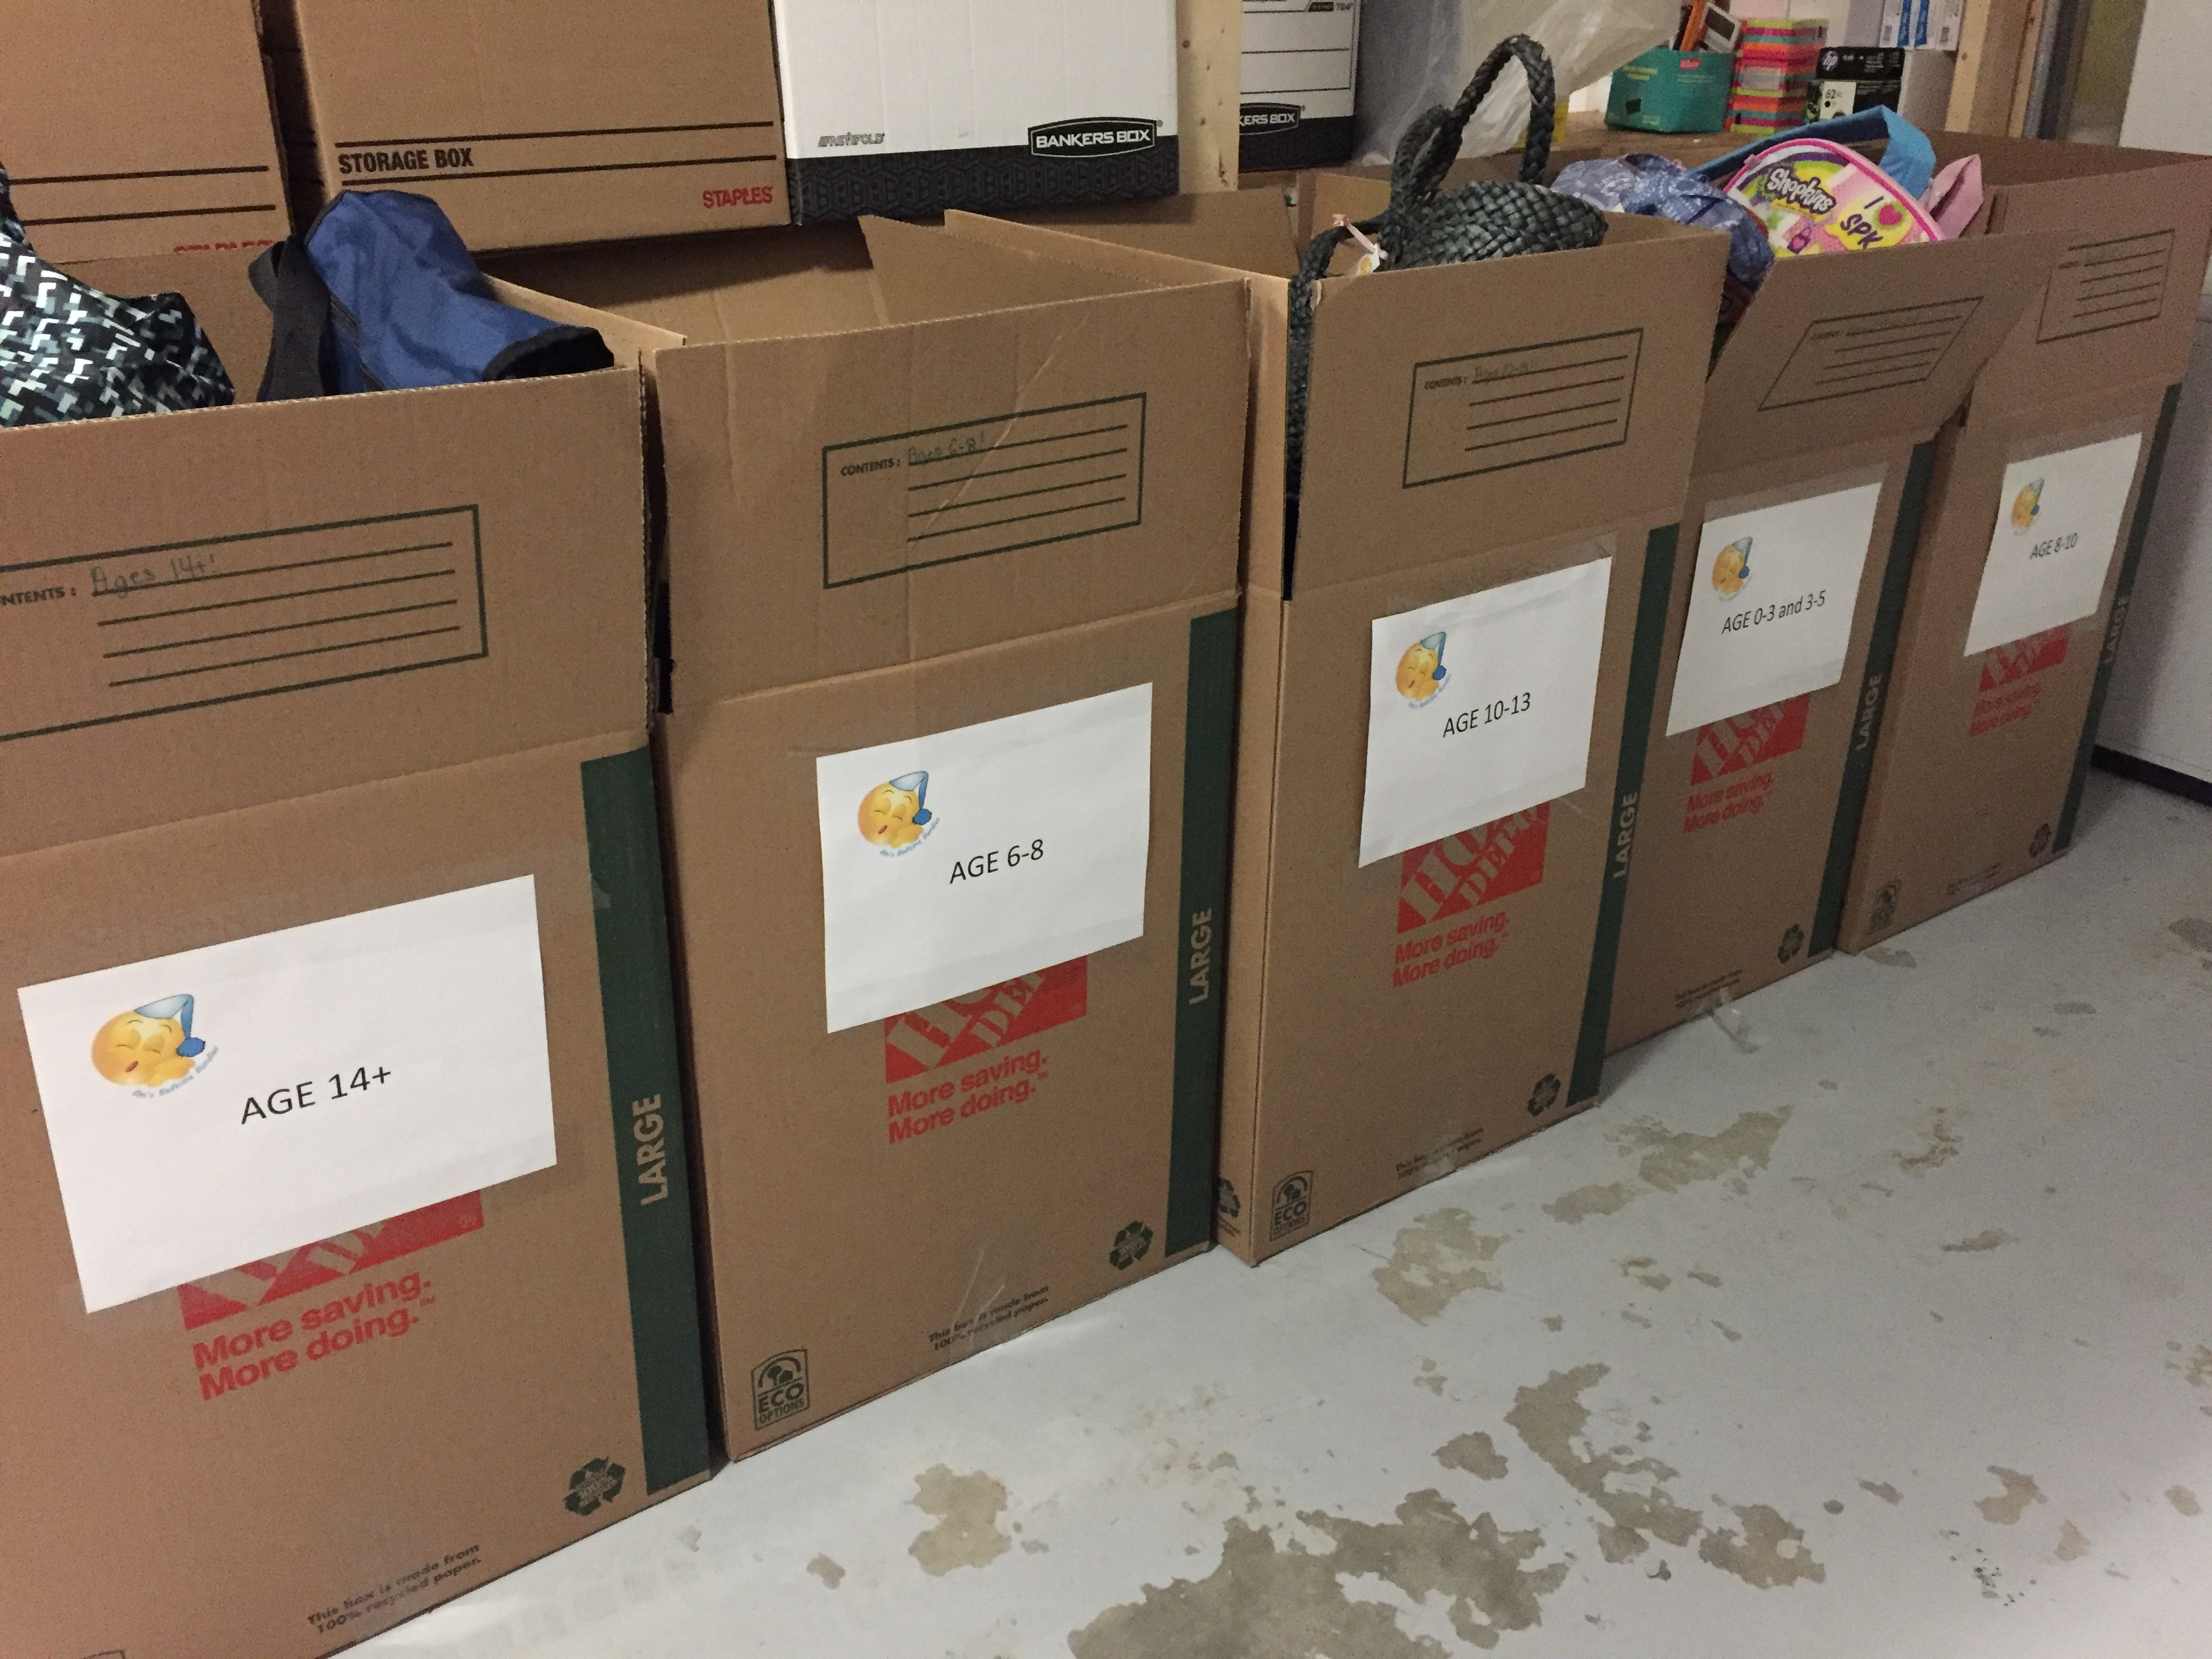 Ems' boxes two